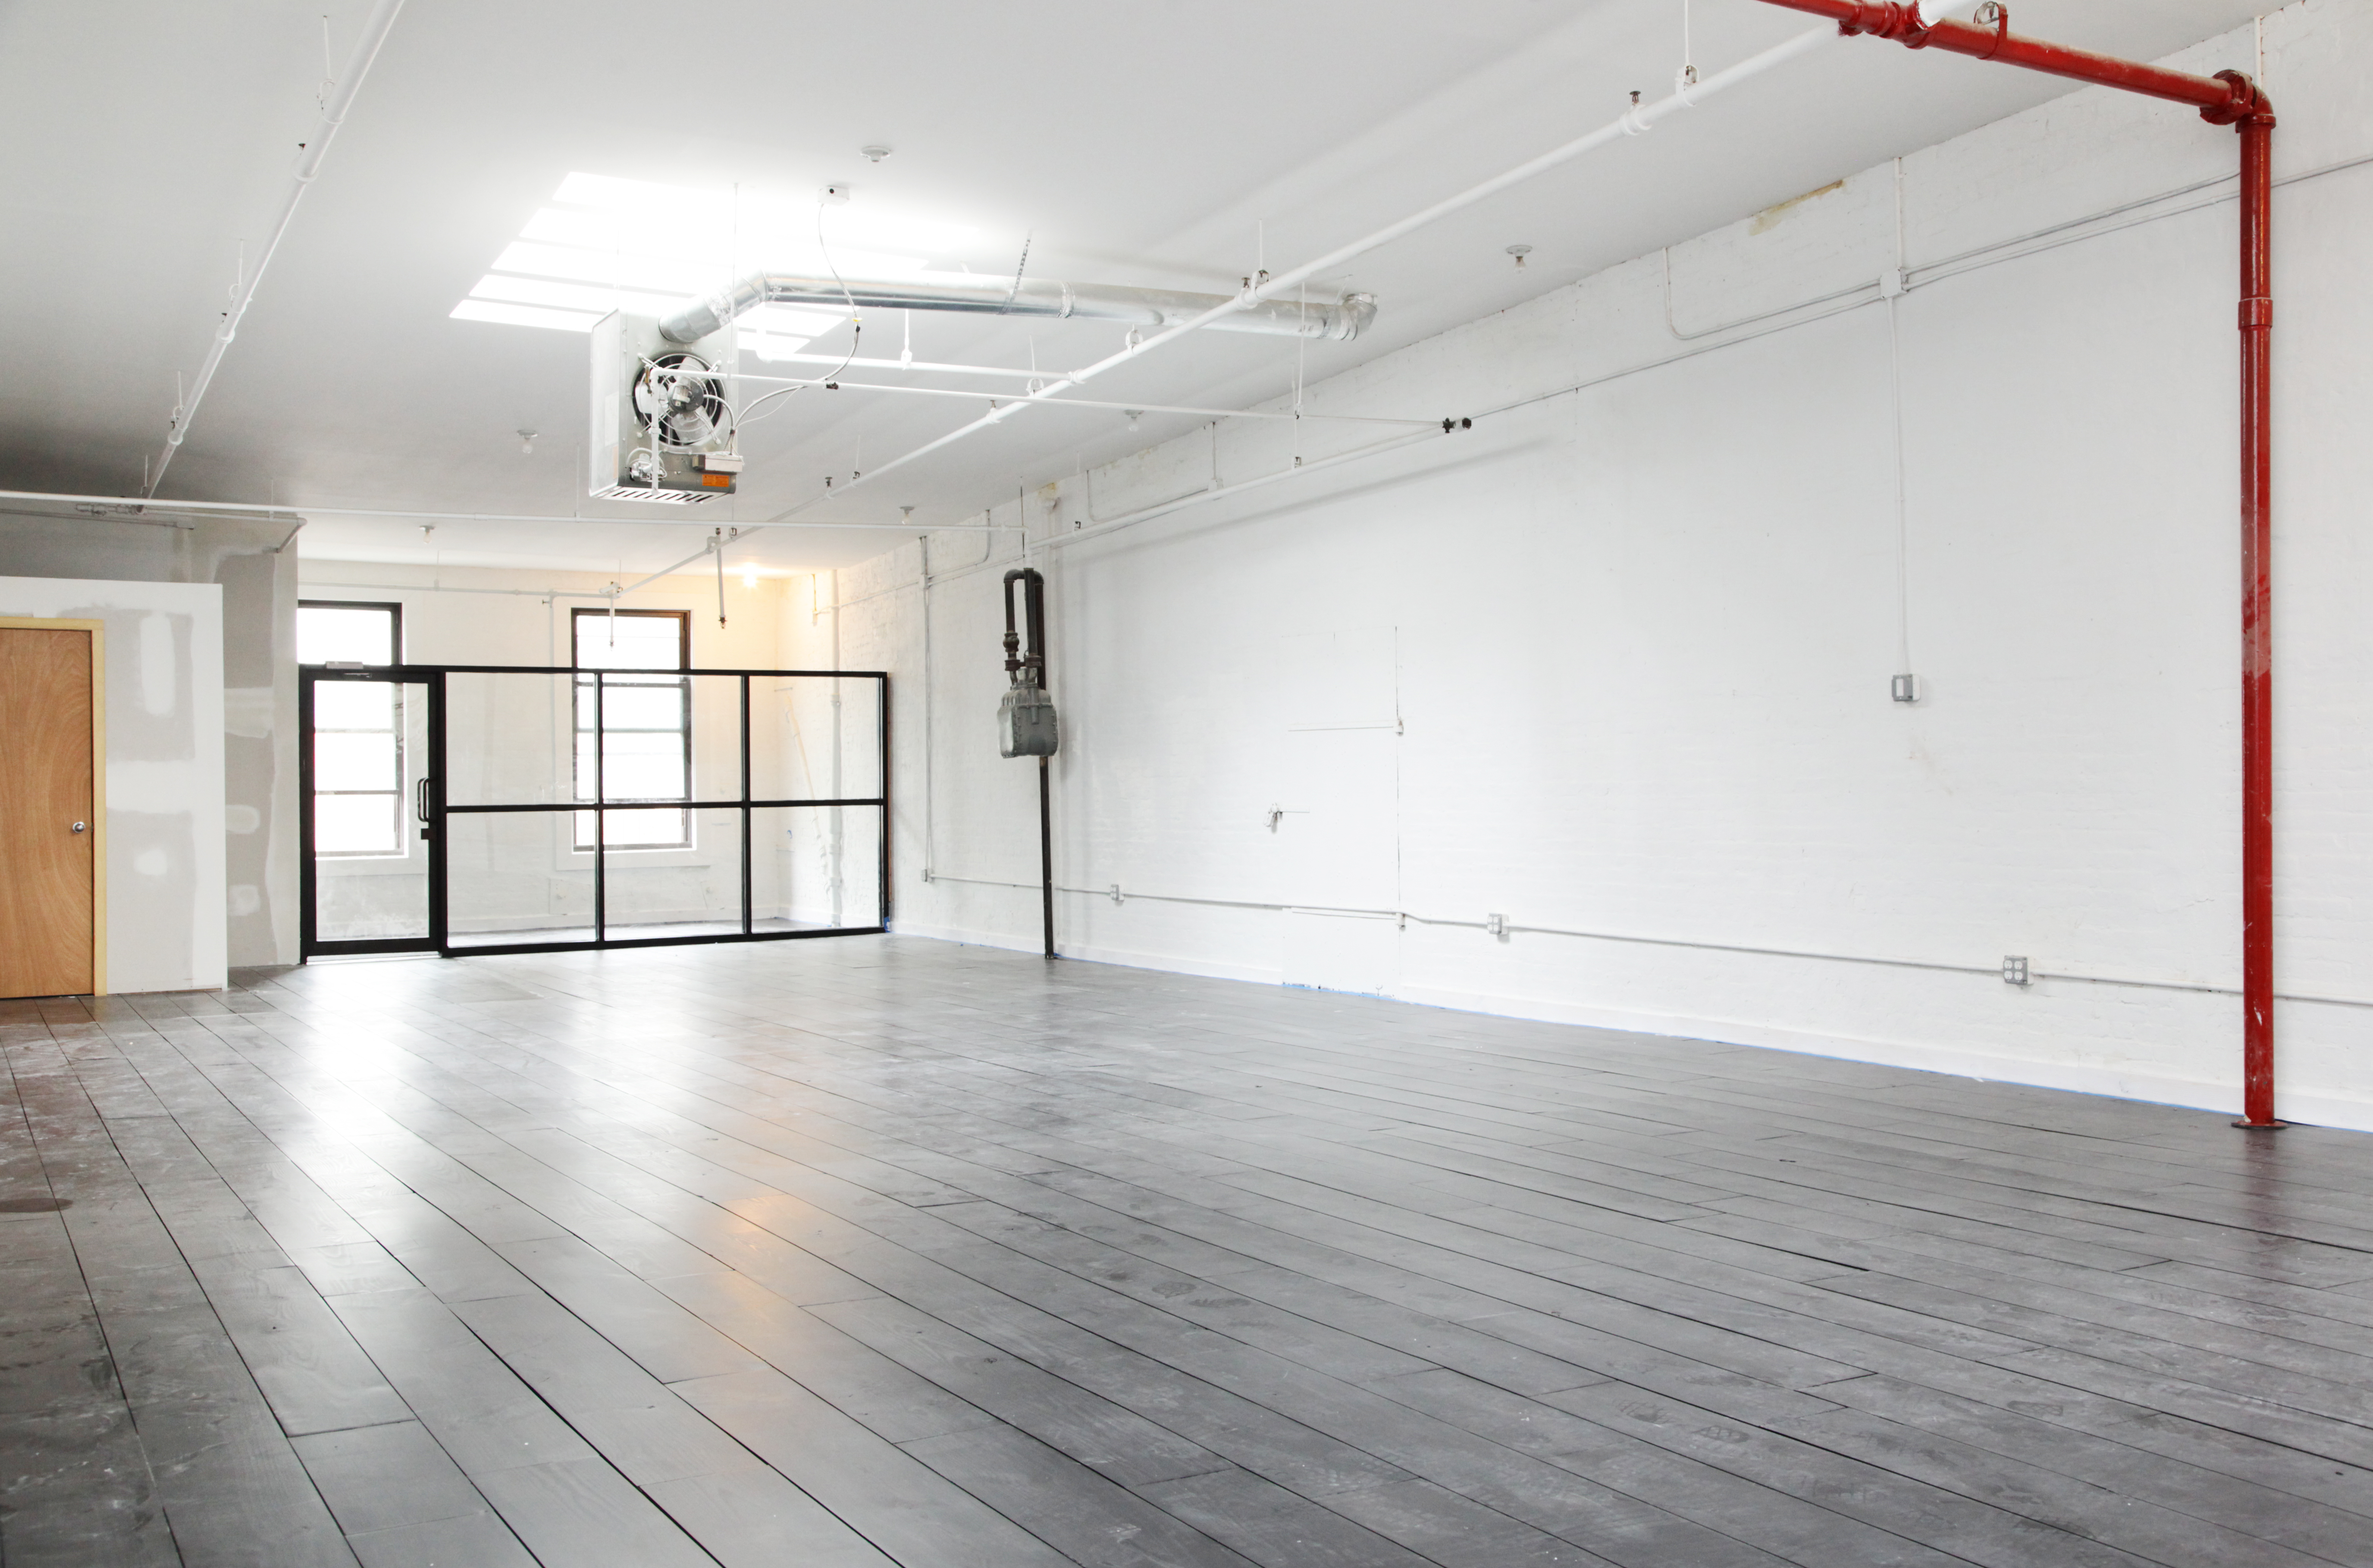 269 canalst nyc interior6f